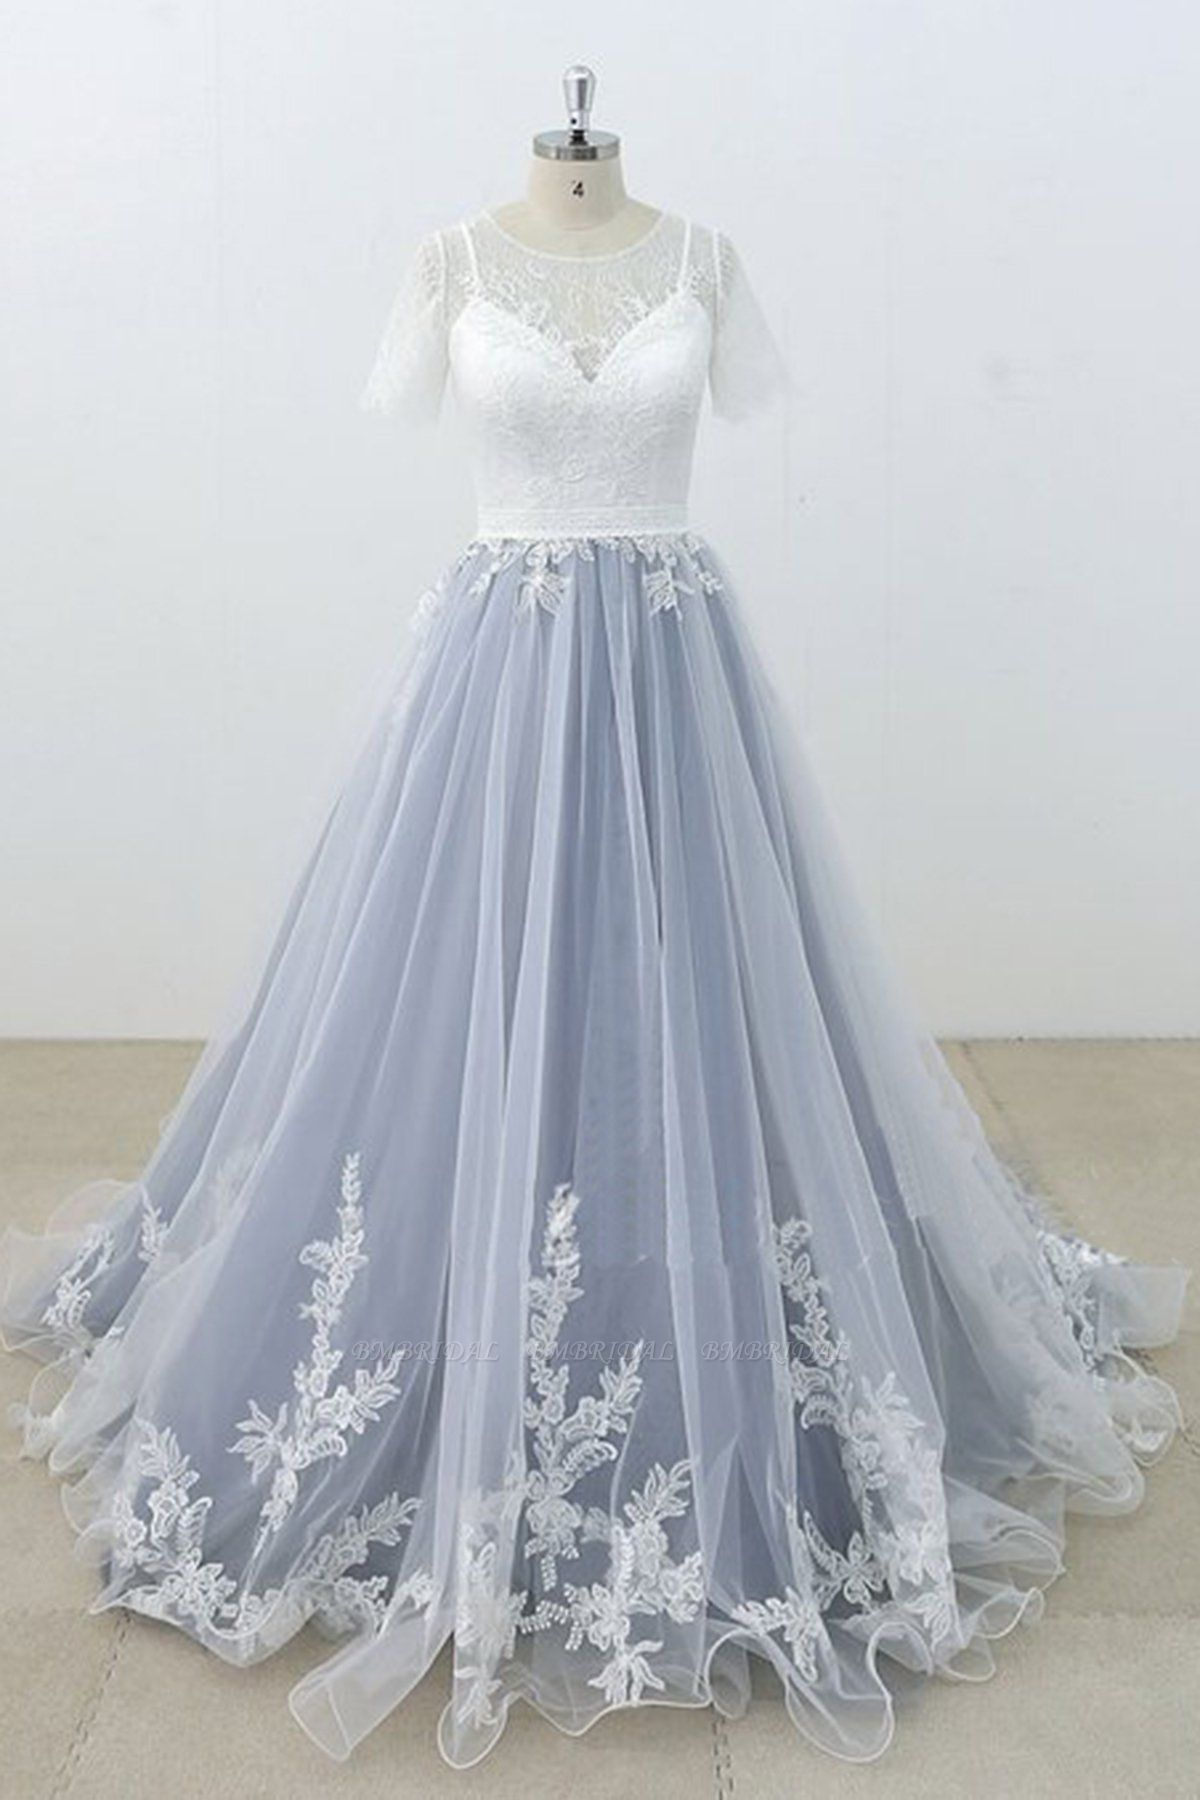 BMbridal AffordableBlue Gray Tulle Ivory Lace Wedding Dress Short Sleeve Beach Bridal Gowns On Sale